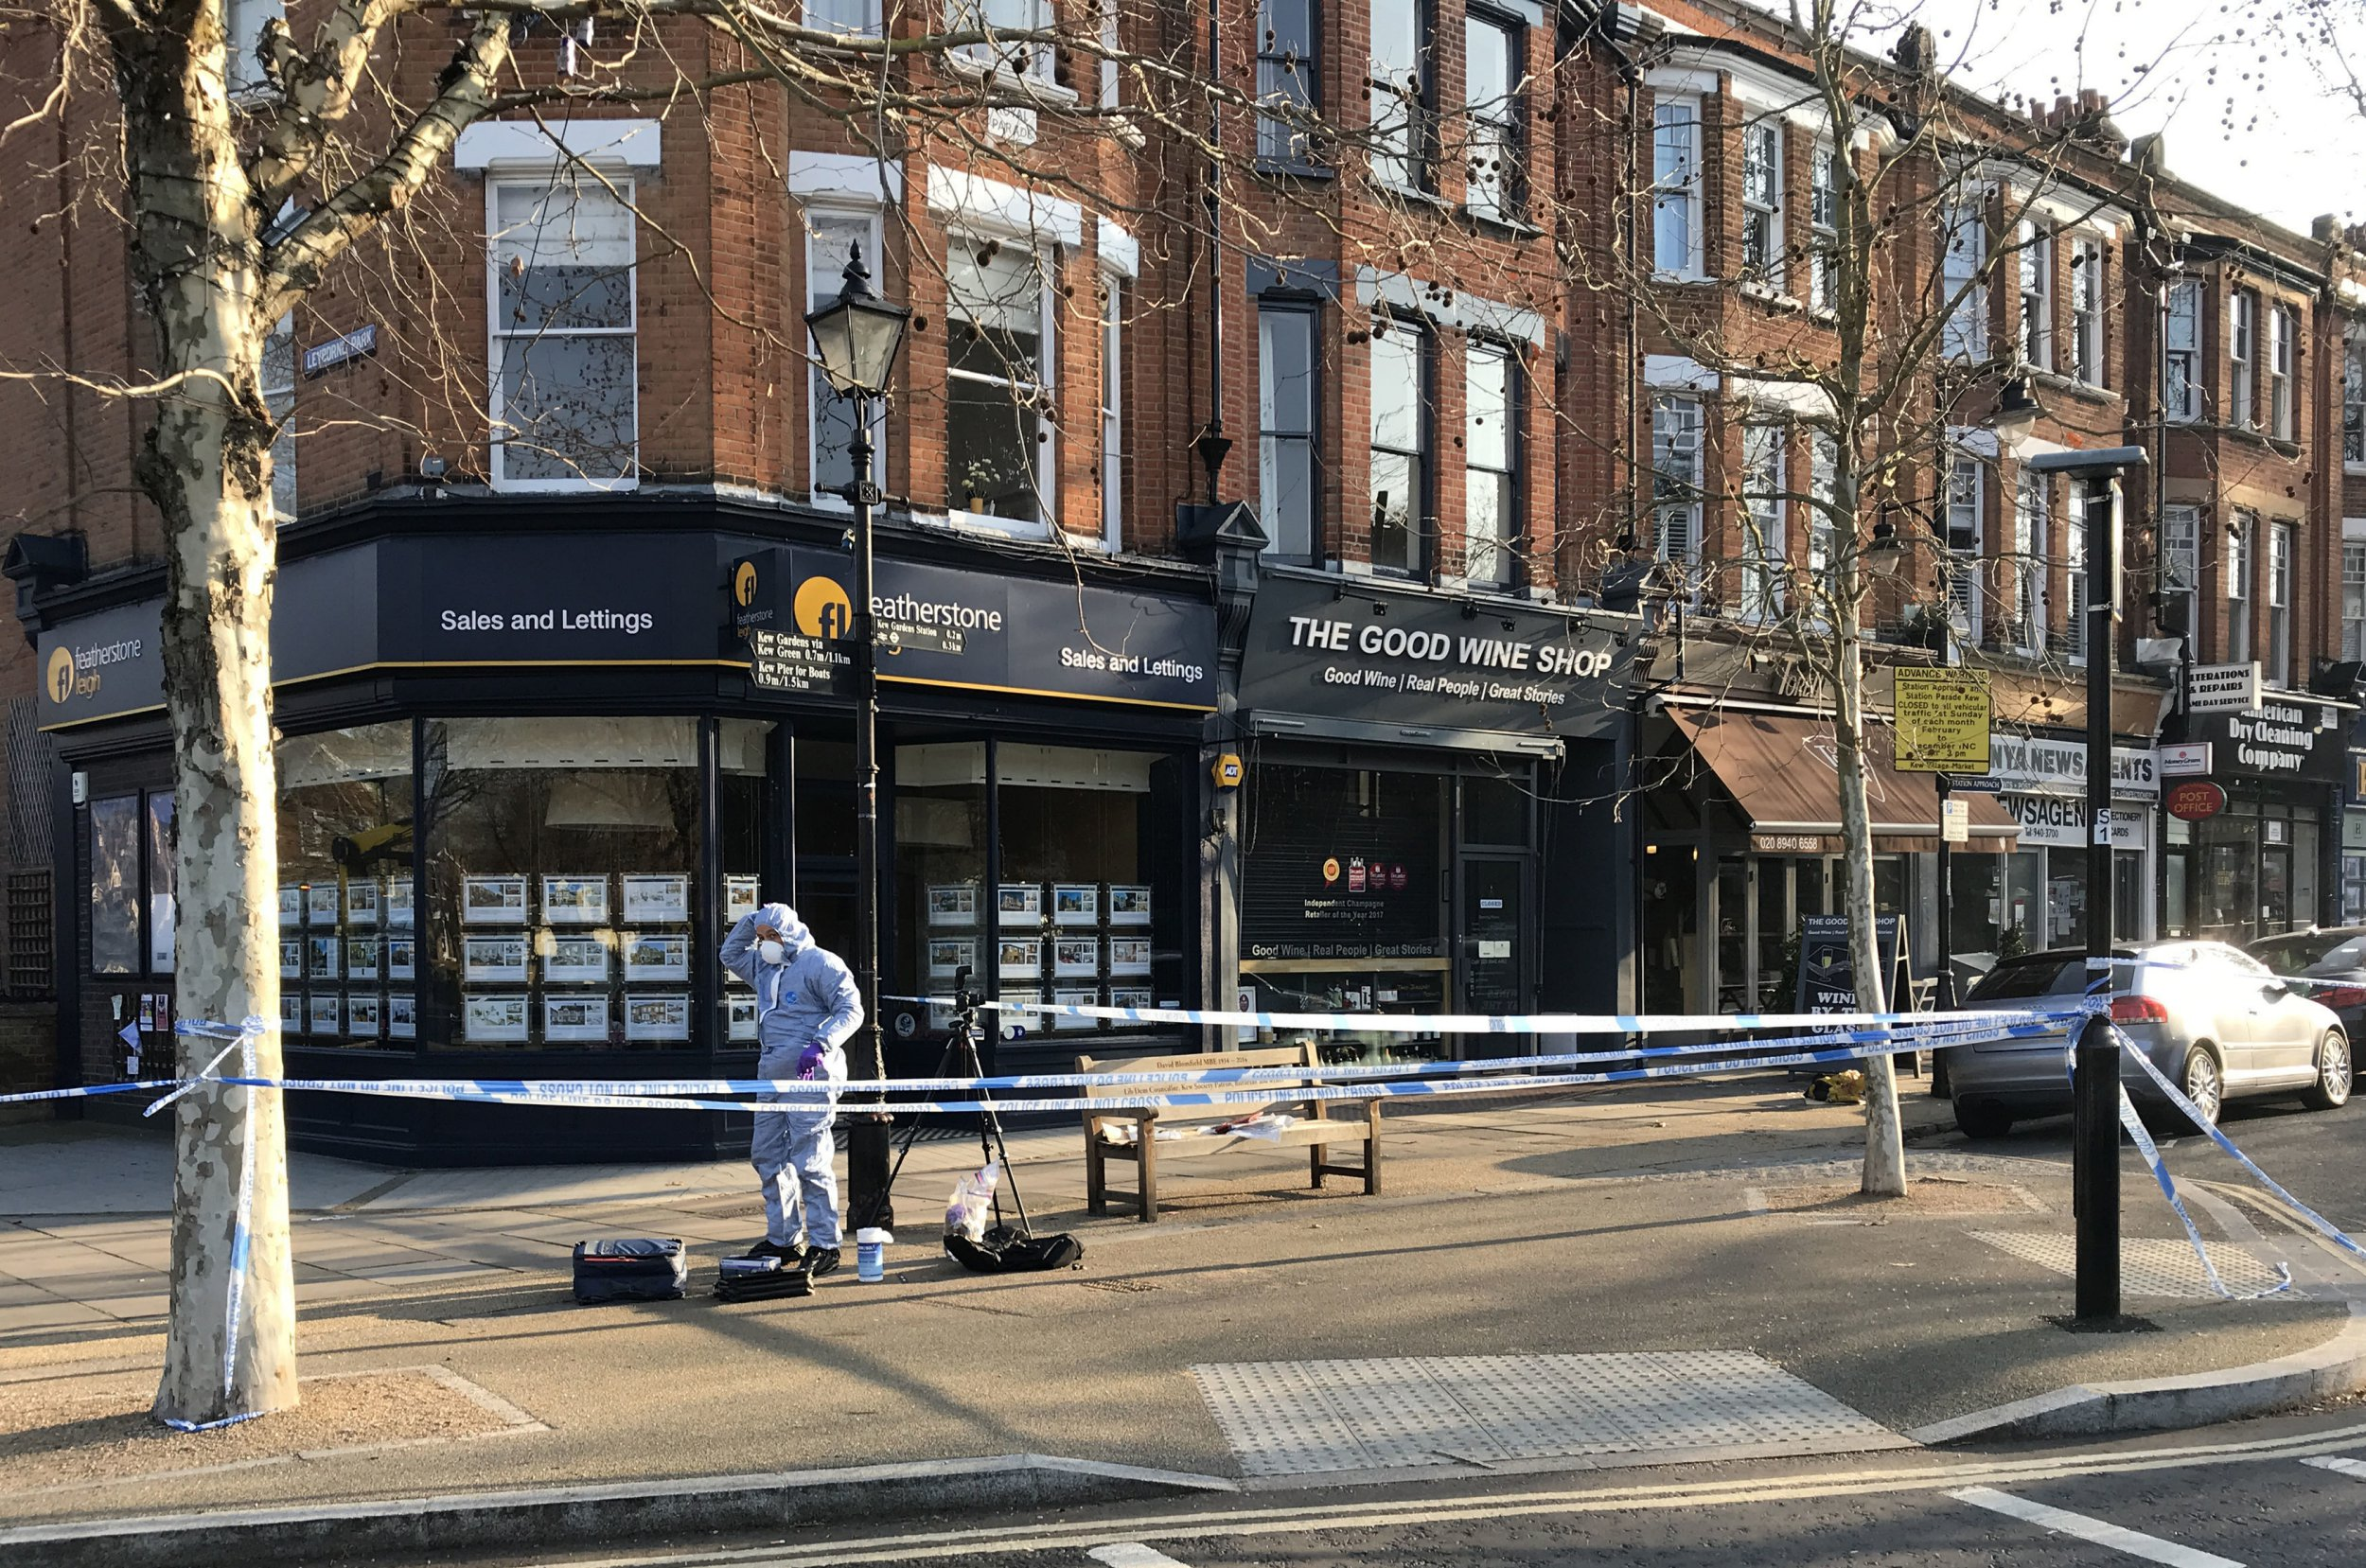 Forensic investigators at the scene where a man was stabbed at Royal Parade, close to the world famous Kew Gardens, west London. PRESS ASSOCIATION Photo. Picture date: Sunday January 20, 2019. See PA story POLICE Kew. Photo credit should read: Martin Keene/PA Wire